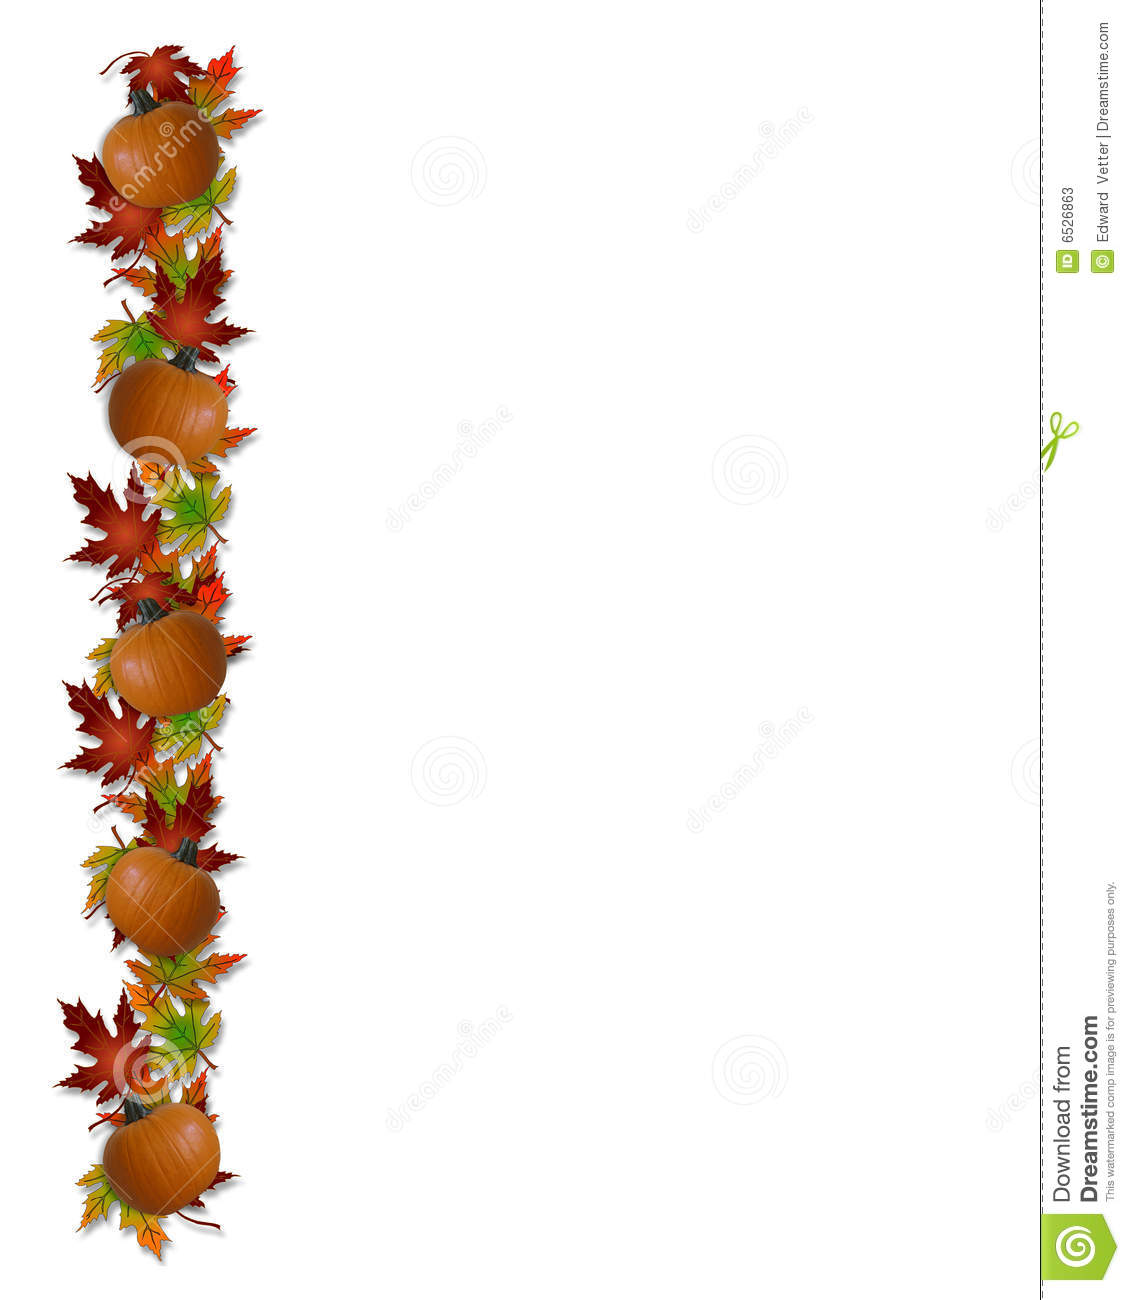 Autumn Fall Leaves And Pumpkins Border Illustration 6526863